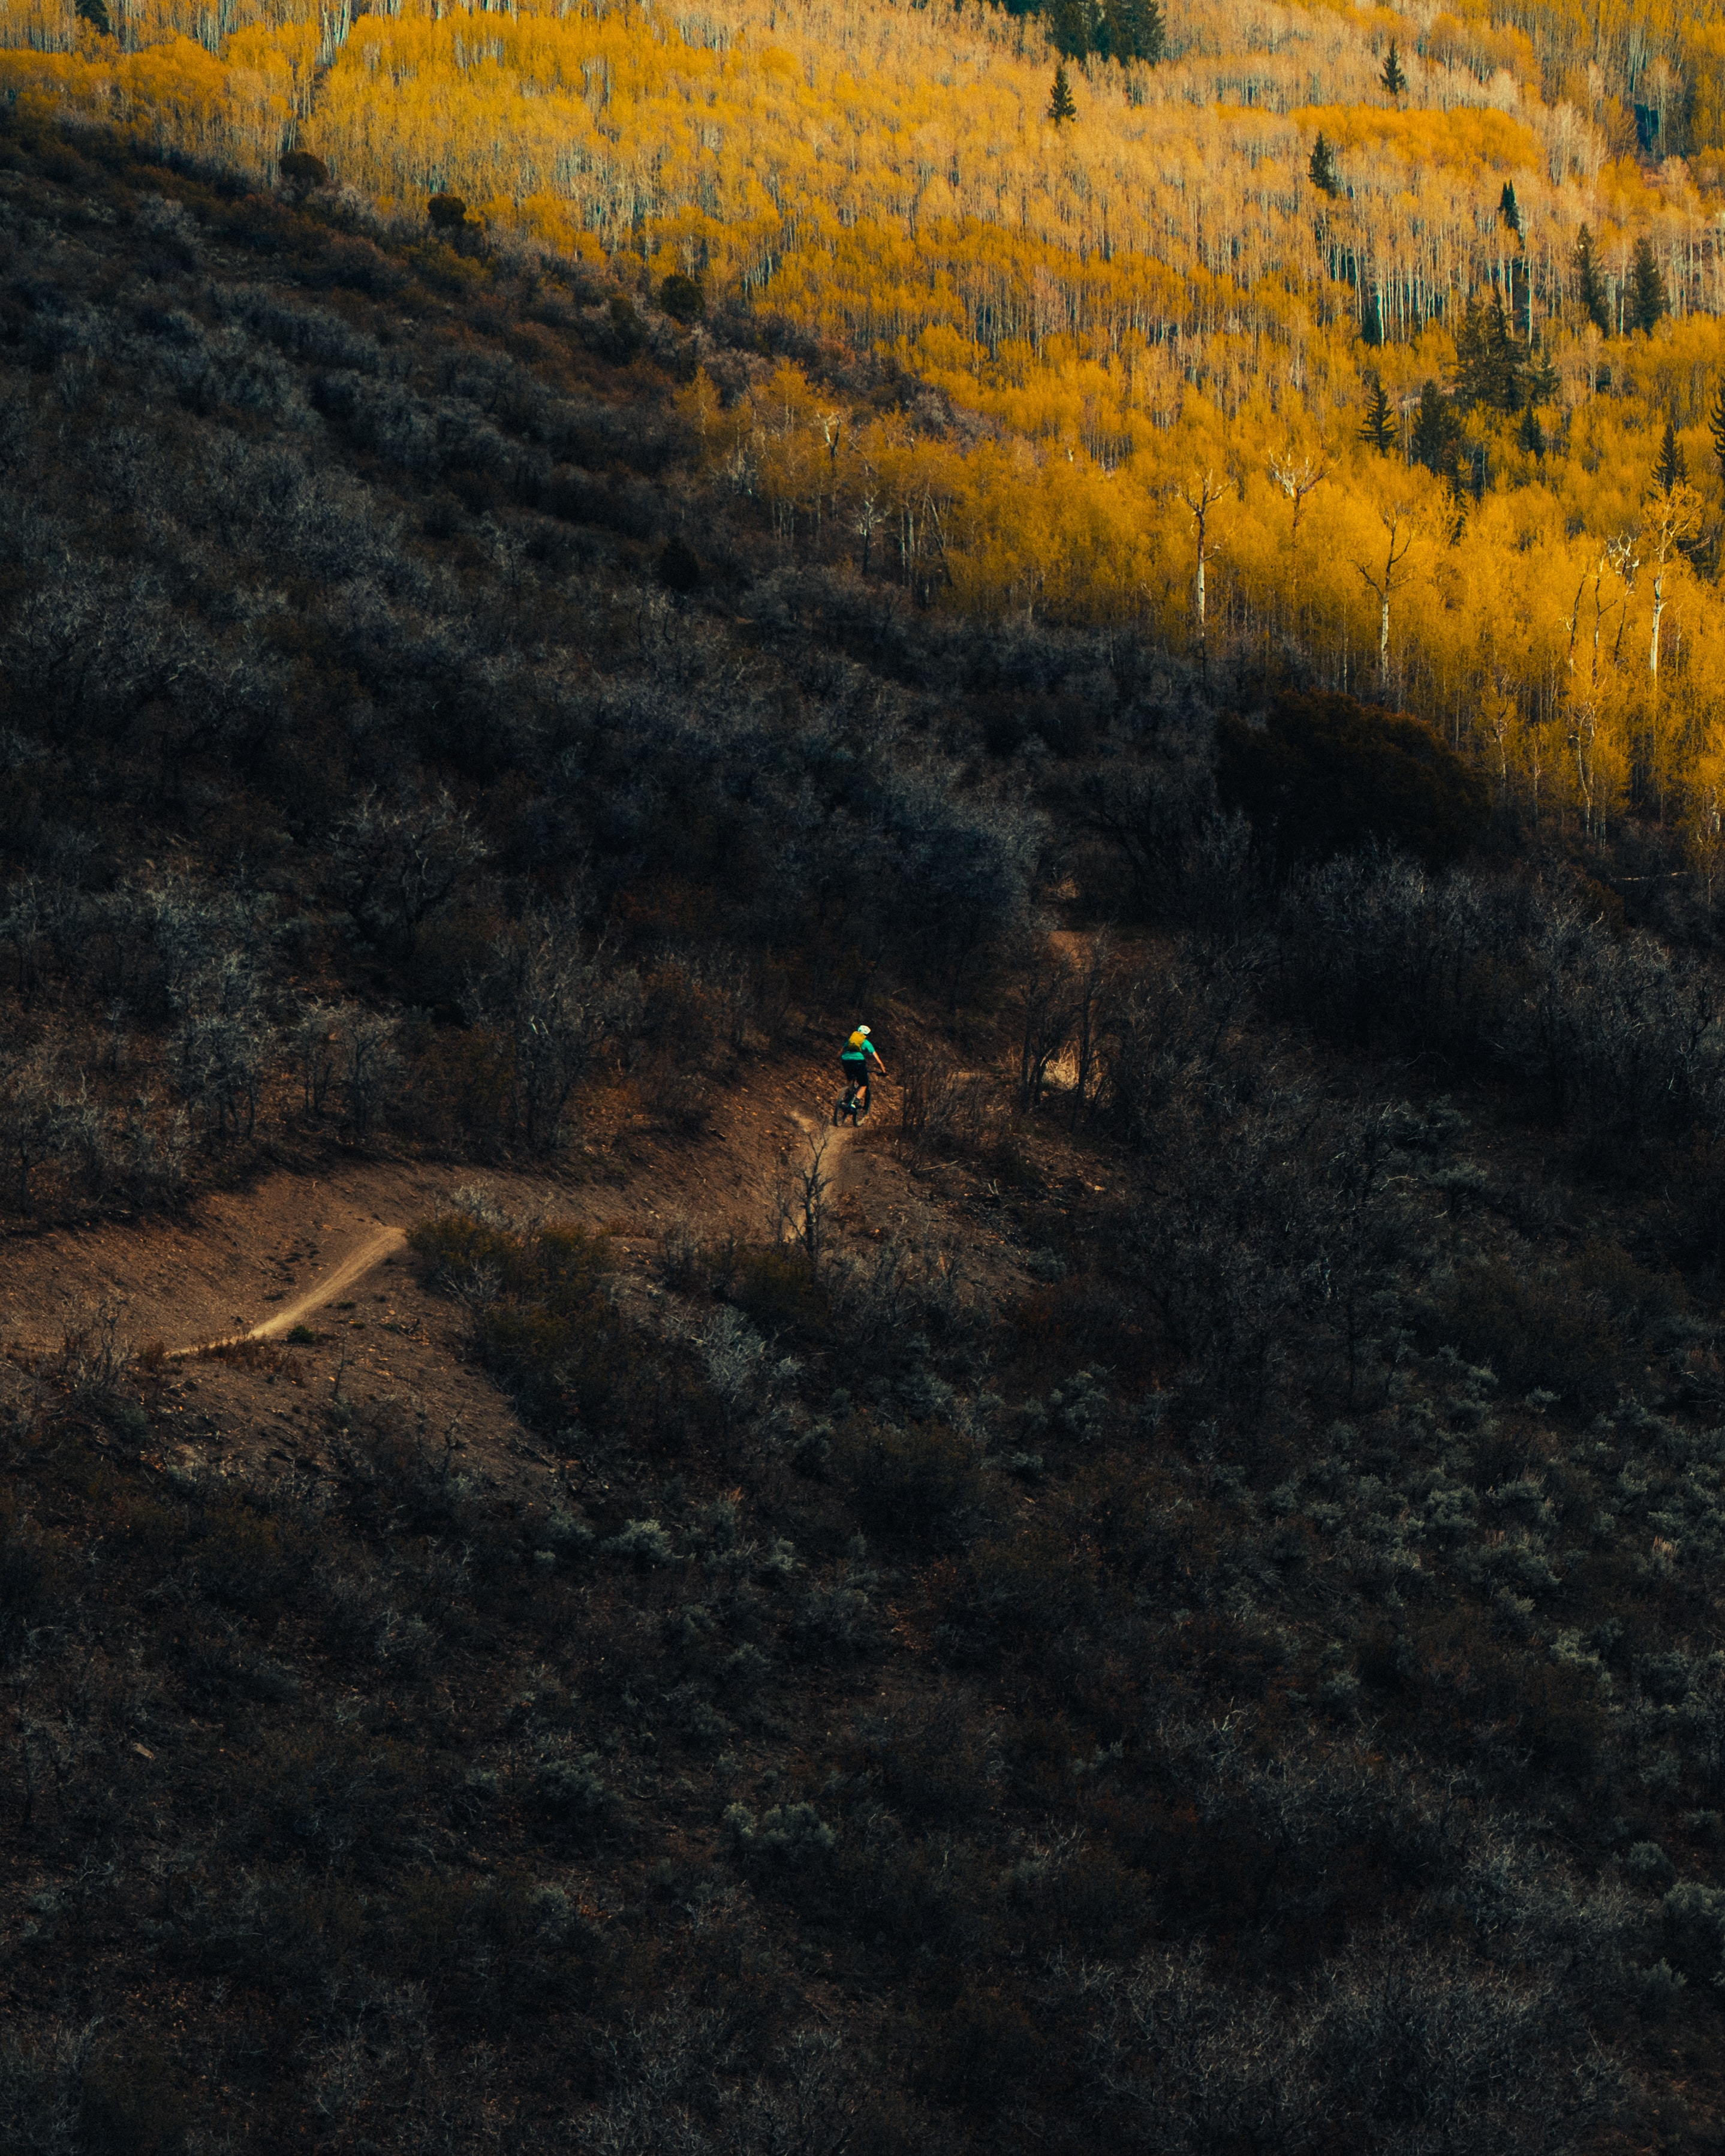 A person riding a bike on a dirt path on an overgrown slope